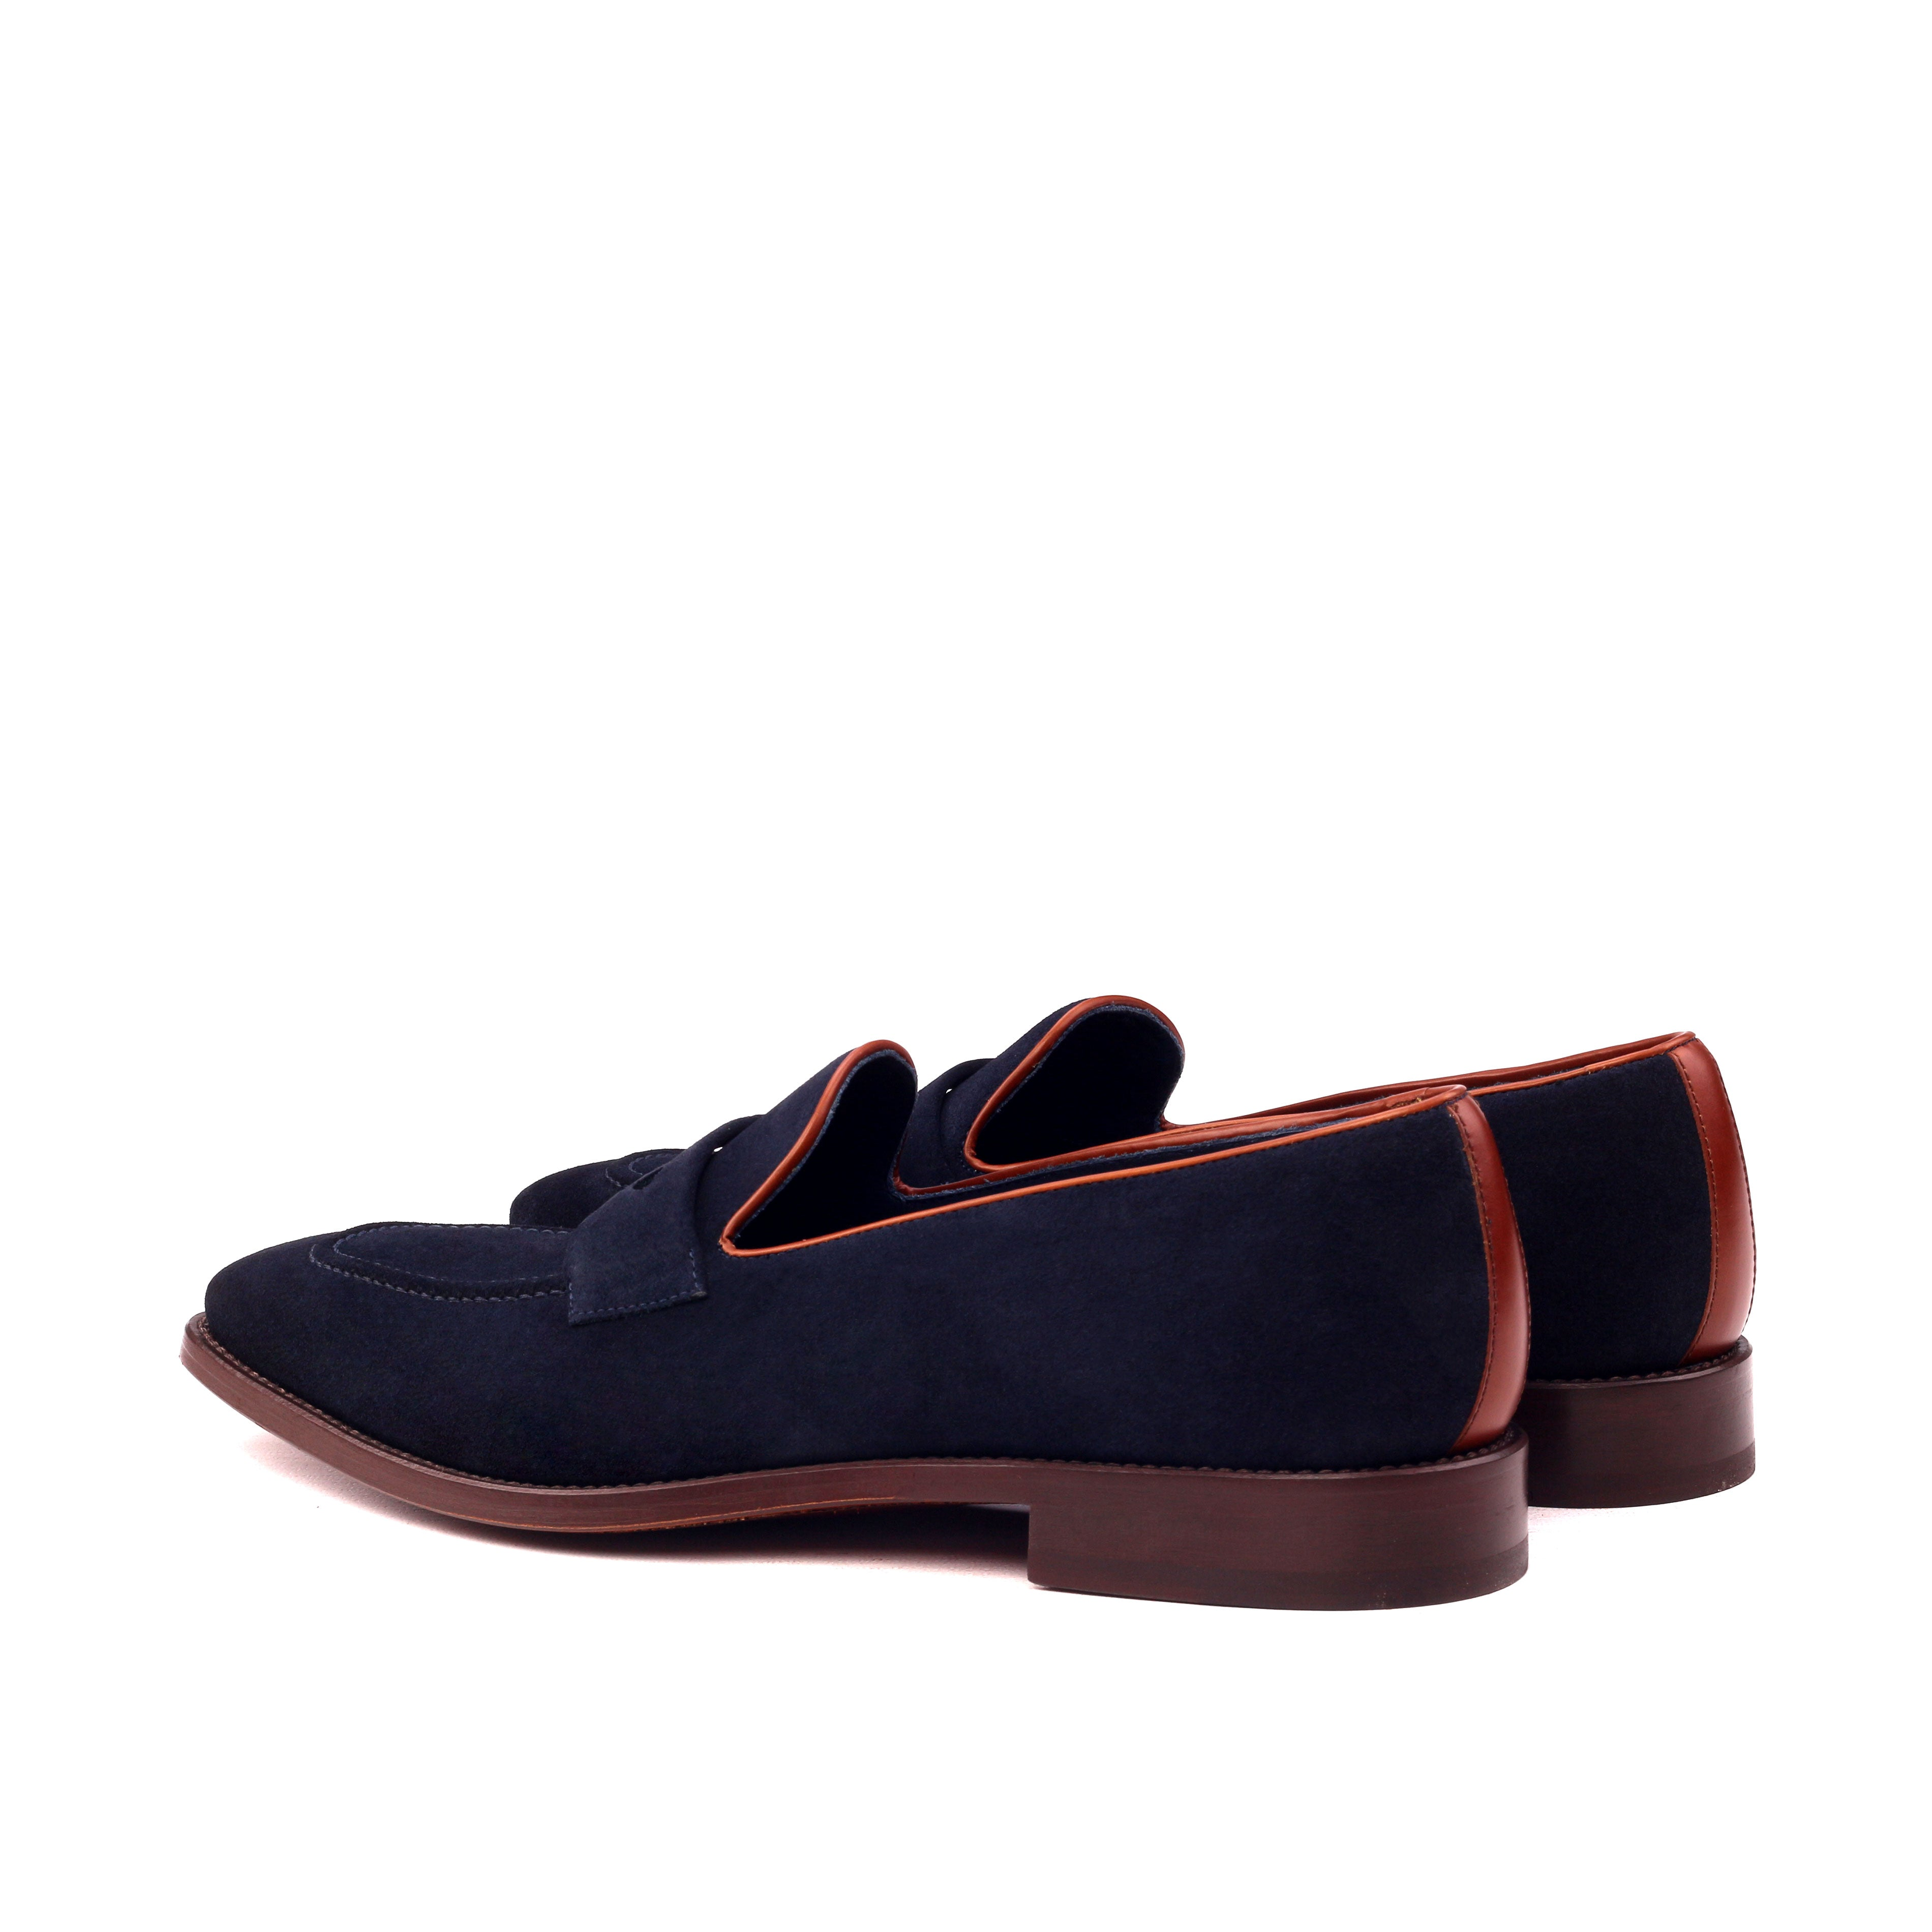 Tucker Navy Suede and Cognac Leather Loafer